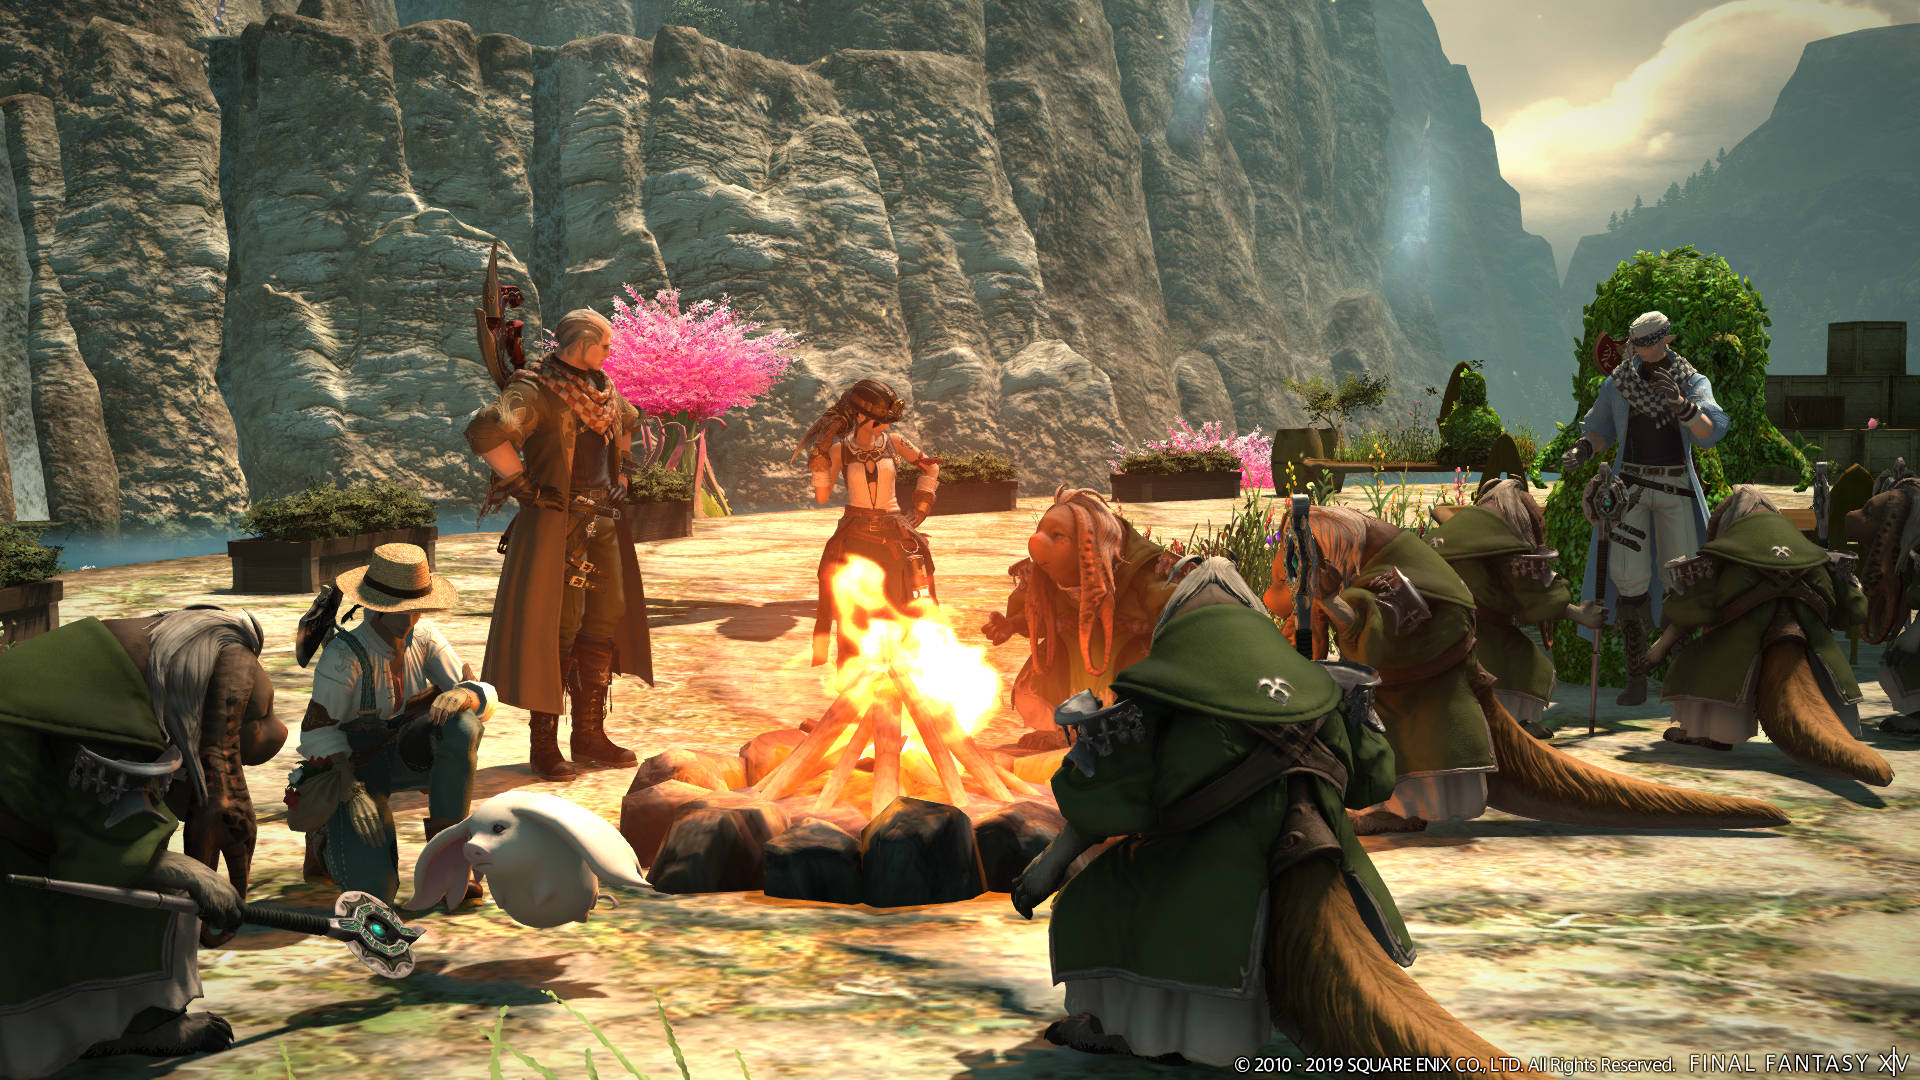 our mini-vacation and #JRPGJuly